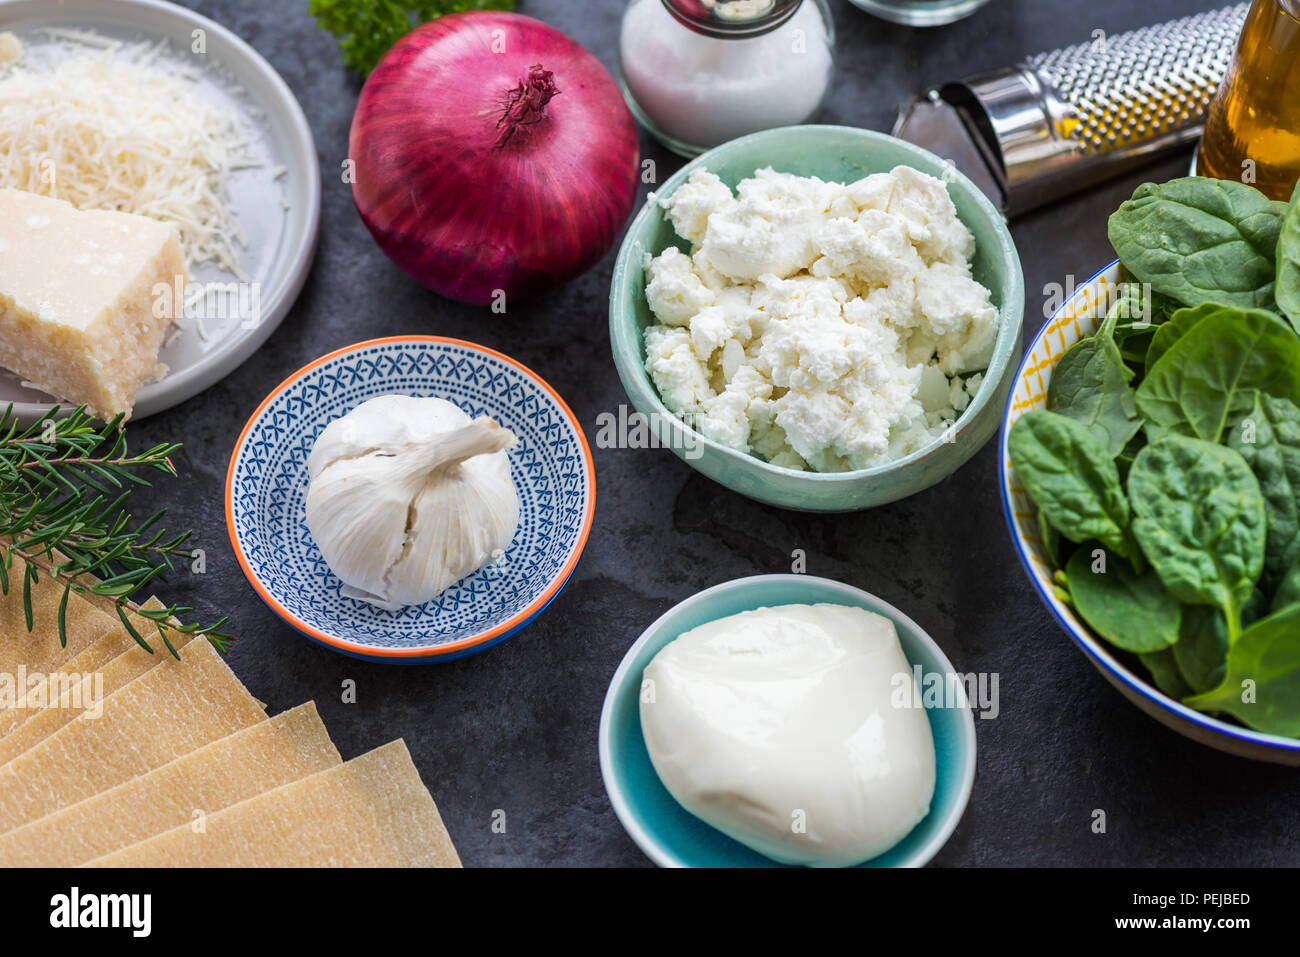 Ingredients for Vegetarian Spinach and Ricotta Lasagna, top view, dark background - Stock Image